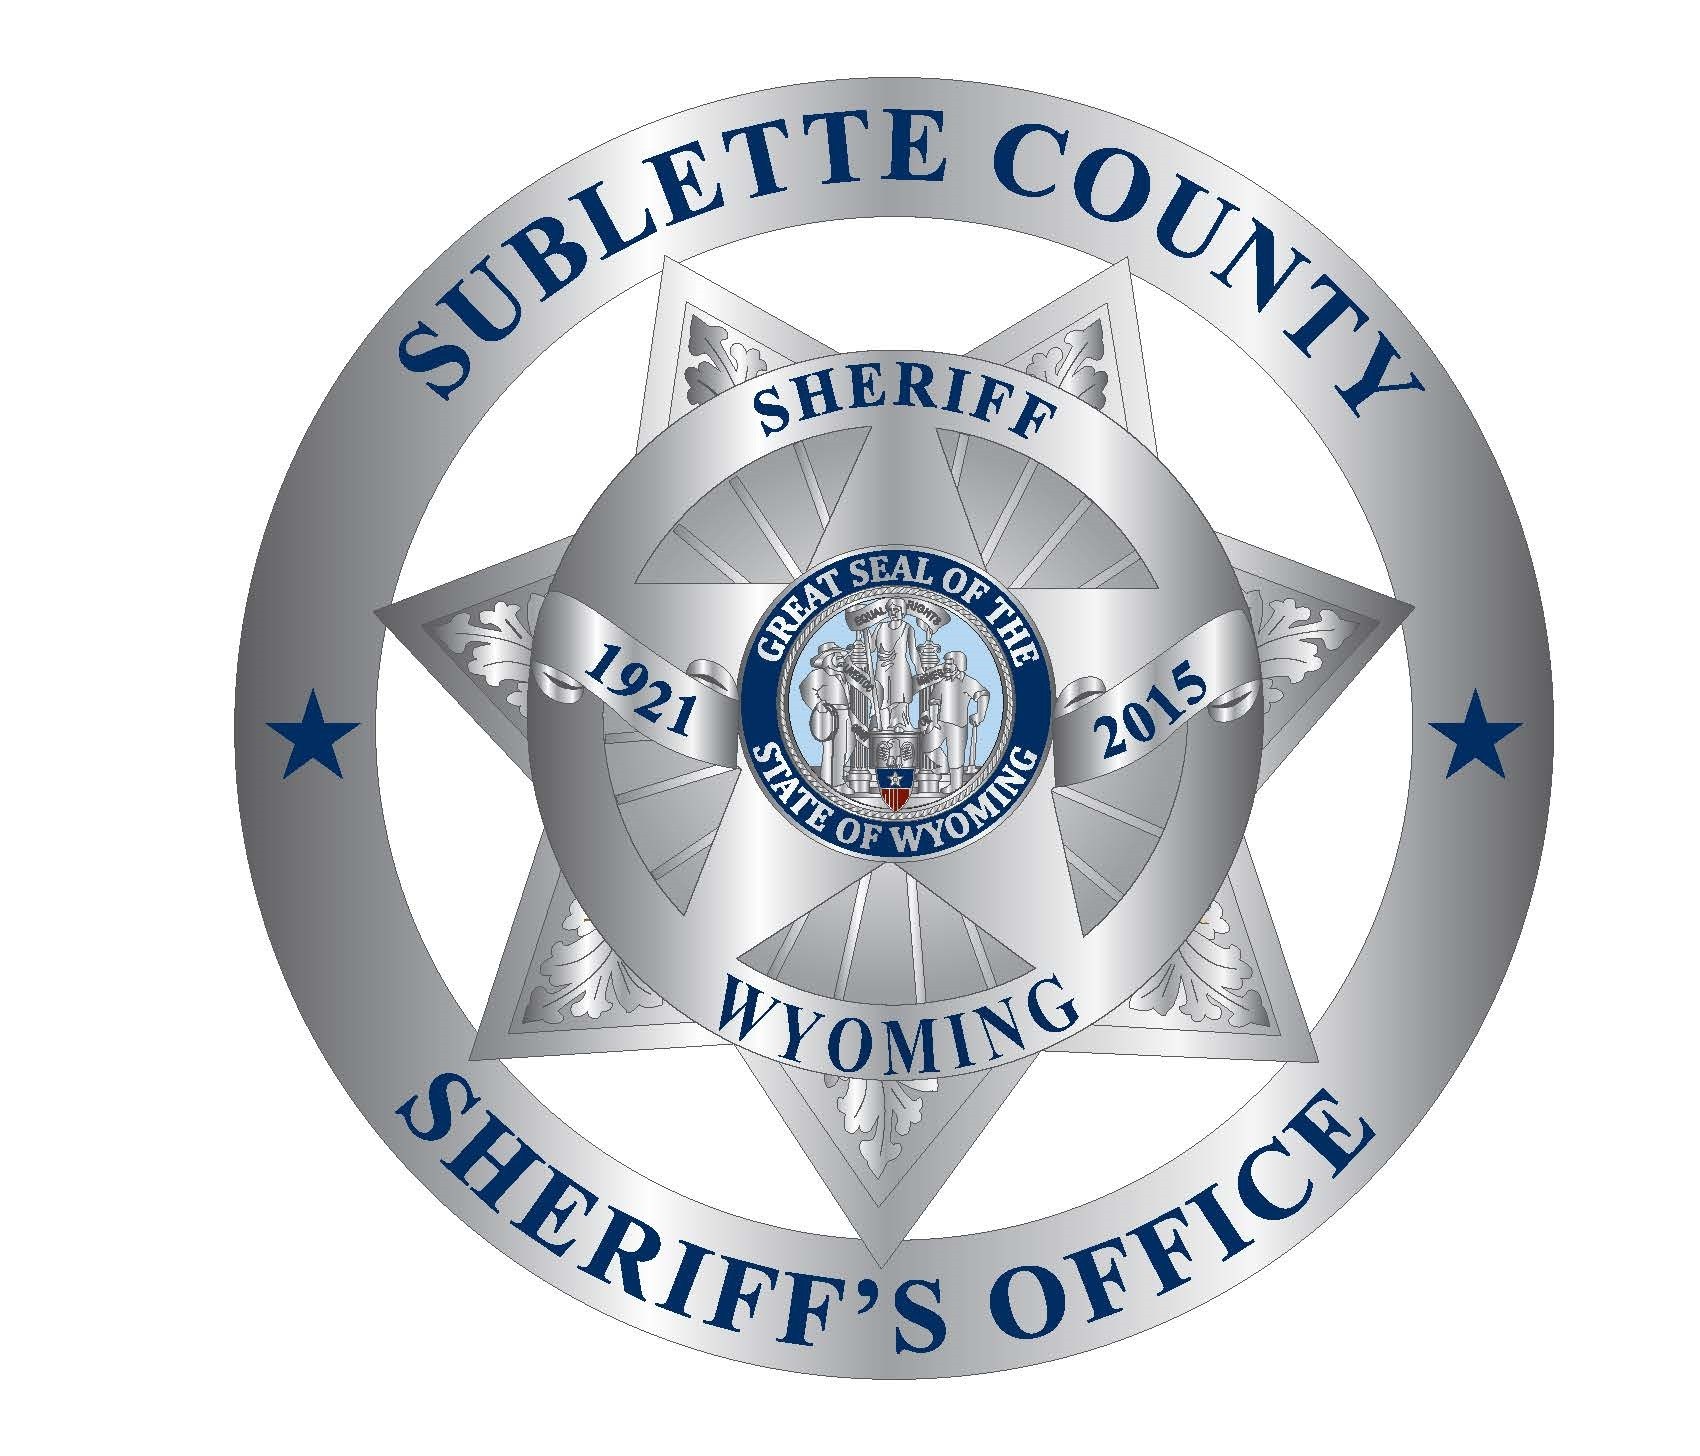 Sublette County Sheriff's Office Investigating Phone Threat To School